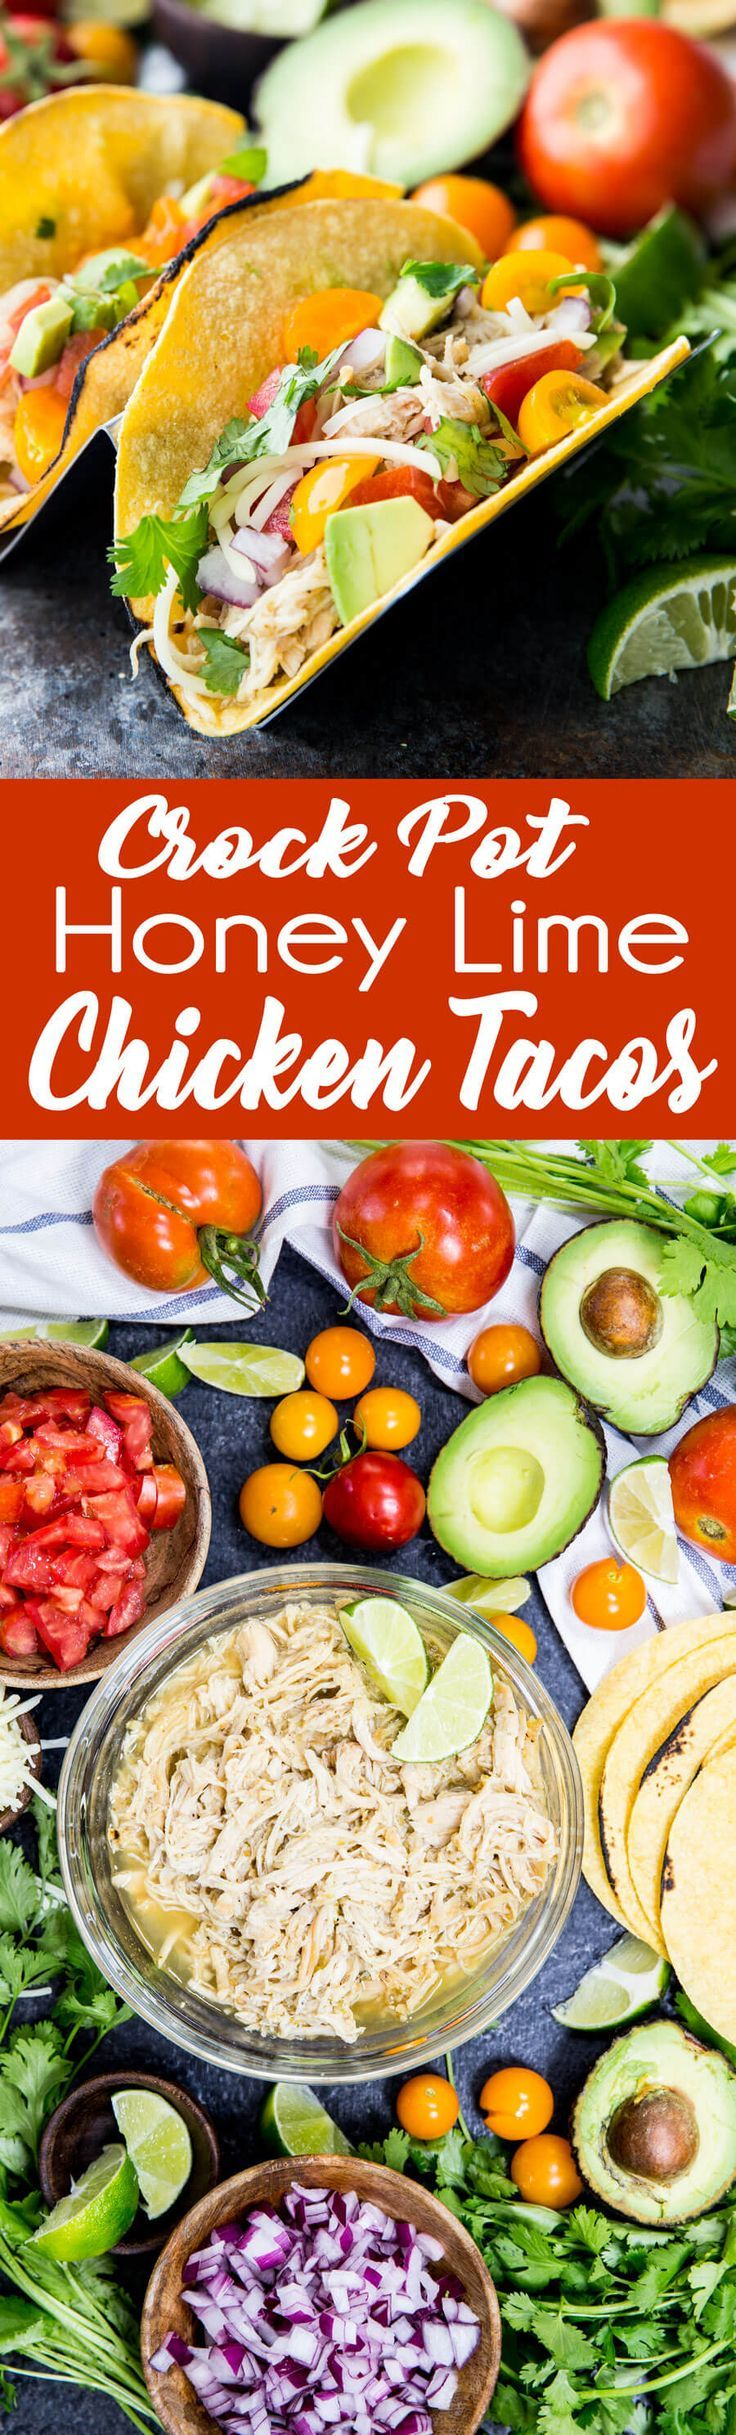 These easy to make slow cooker honey lime chicken tacos are the perfect tailgating food. They are low cost, they feed a crowd, and taste amazing! #ad #switchandsave